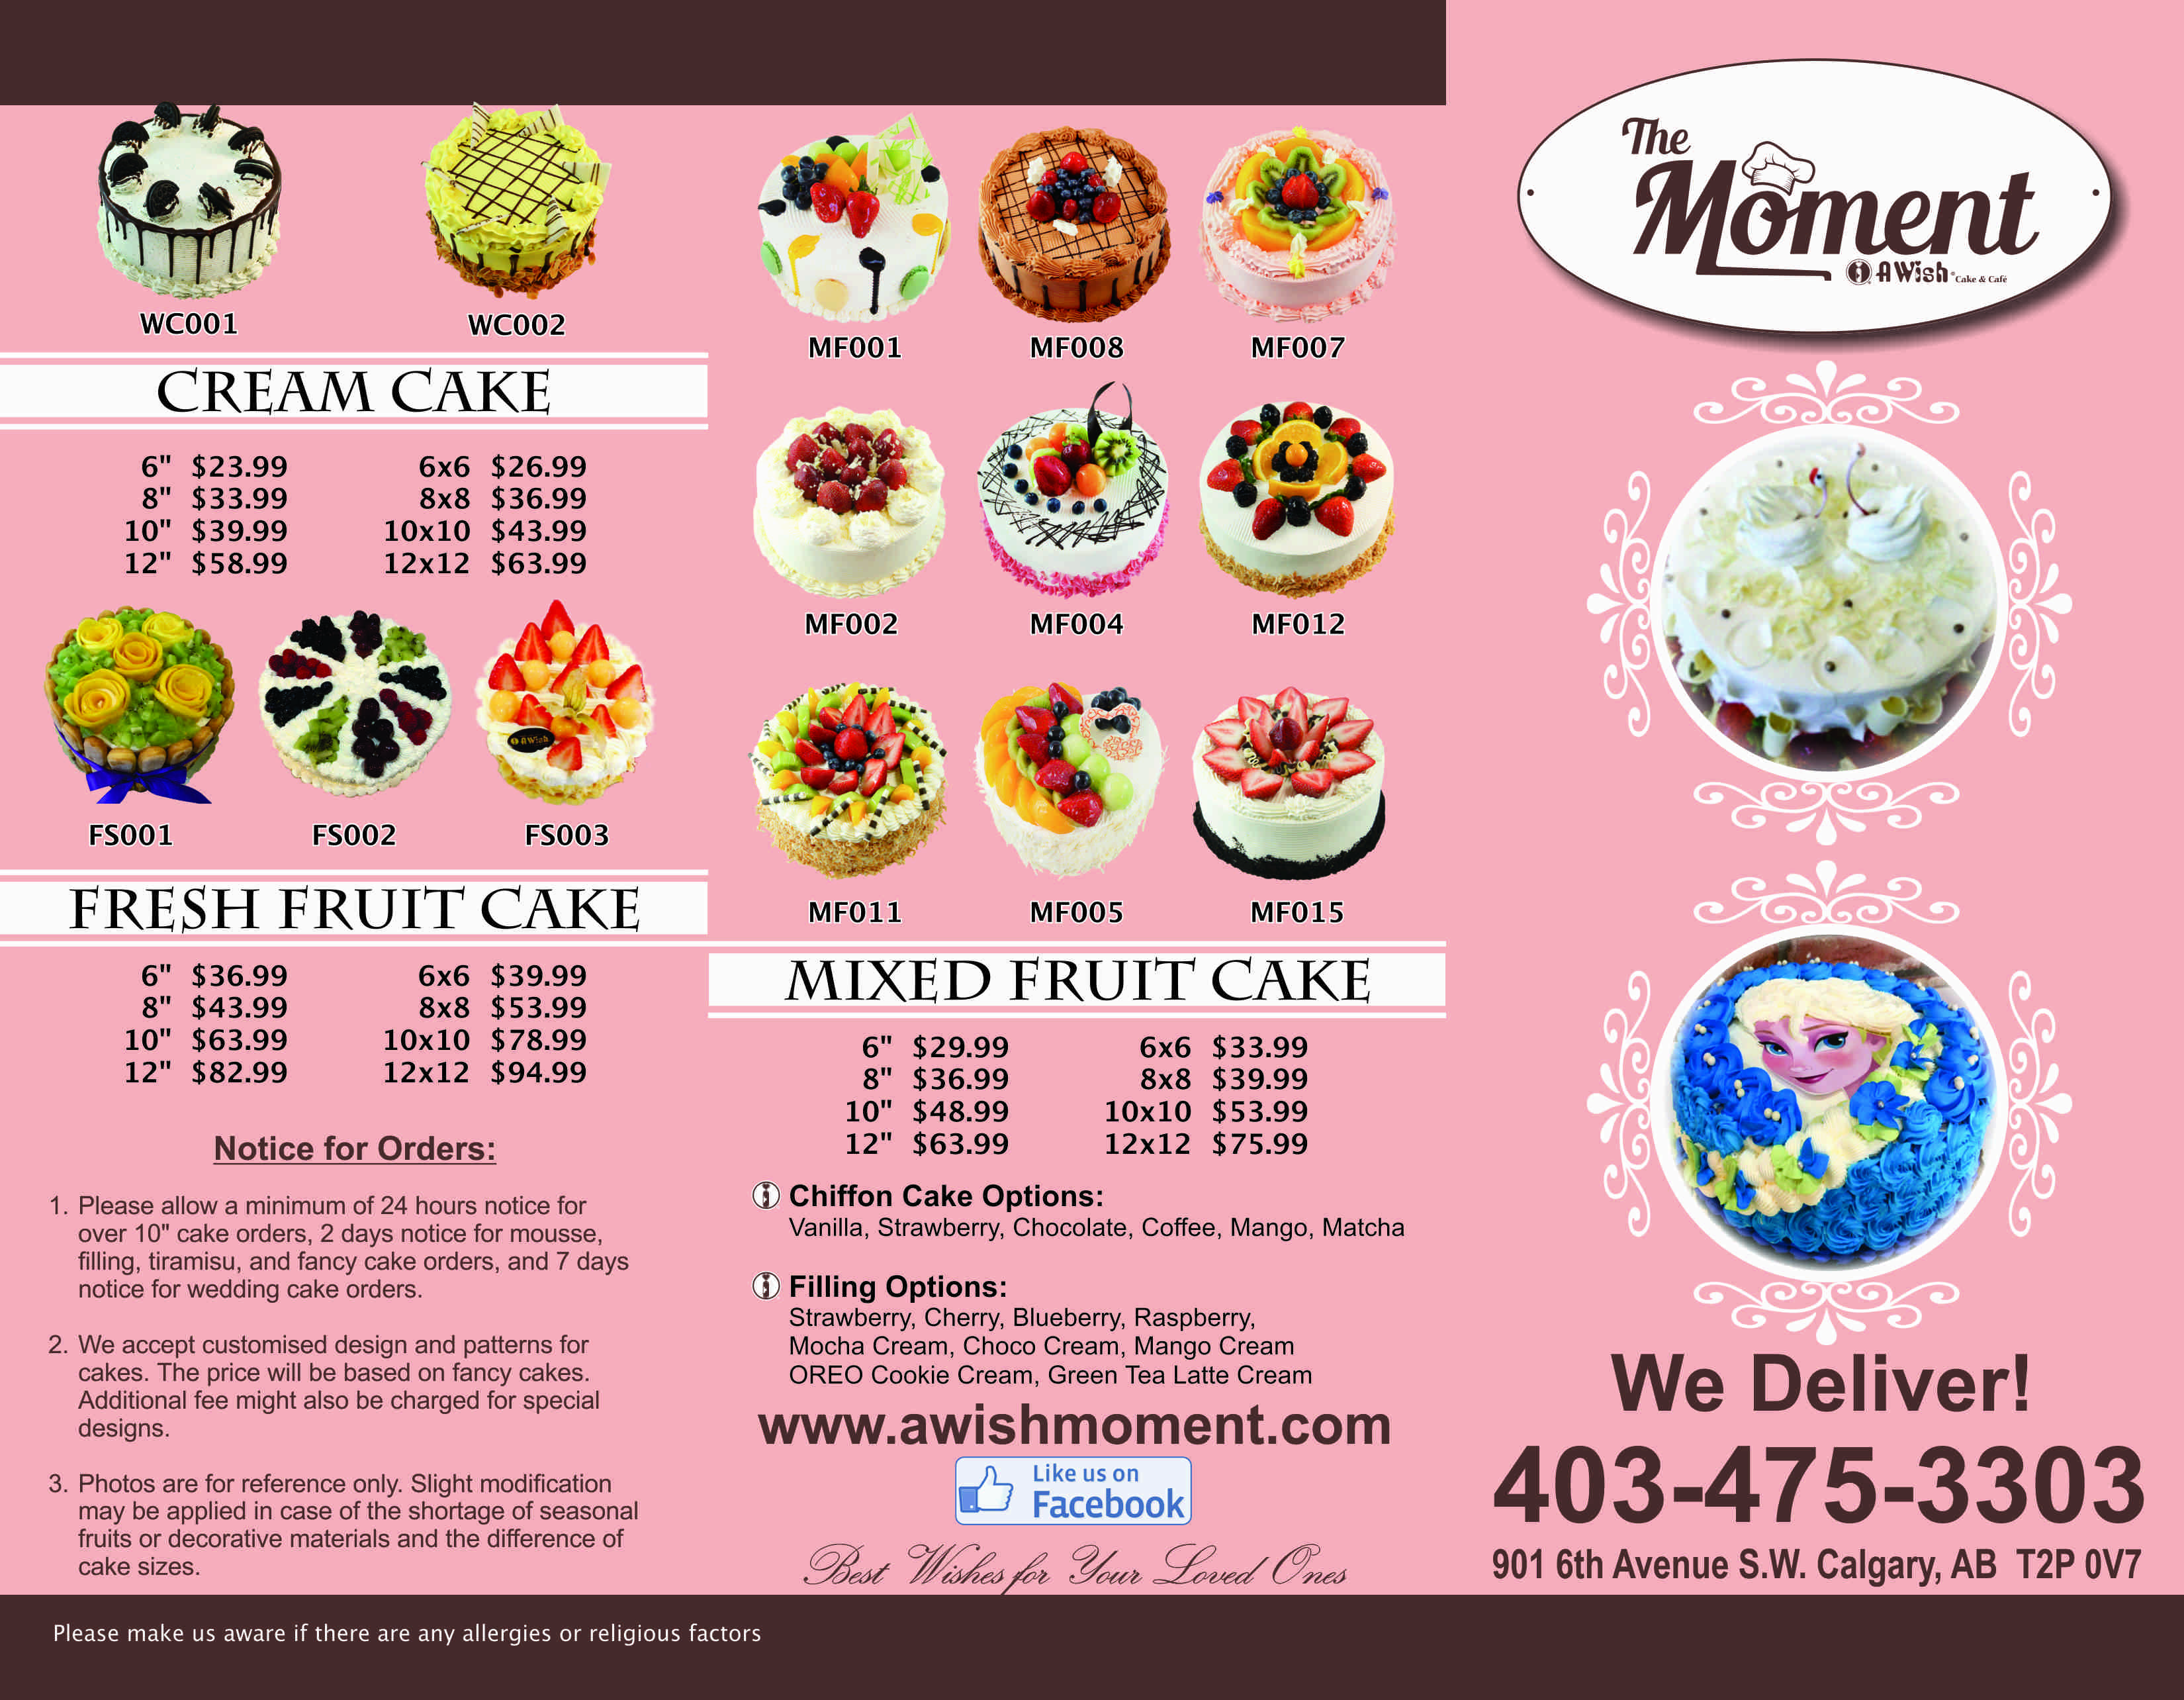 A Wish Moment Cake Menu Overview